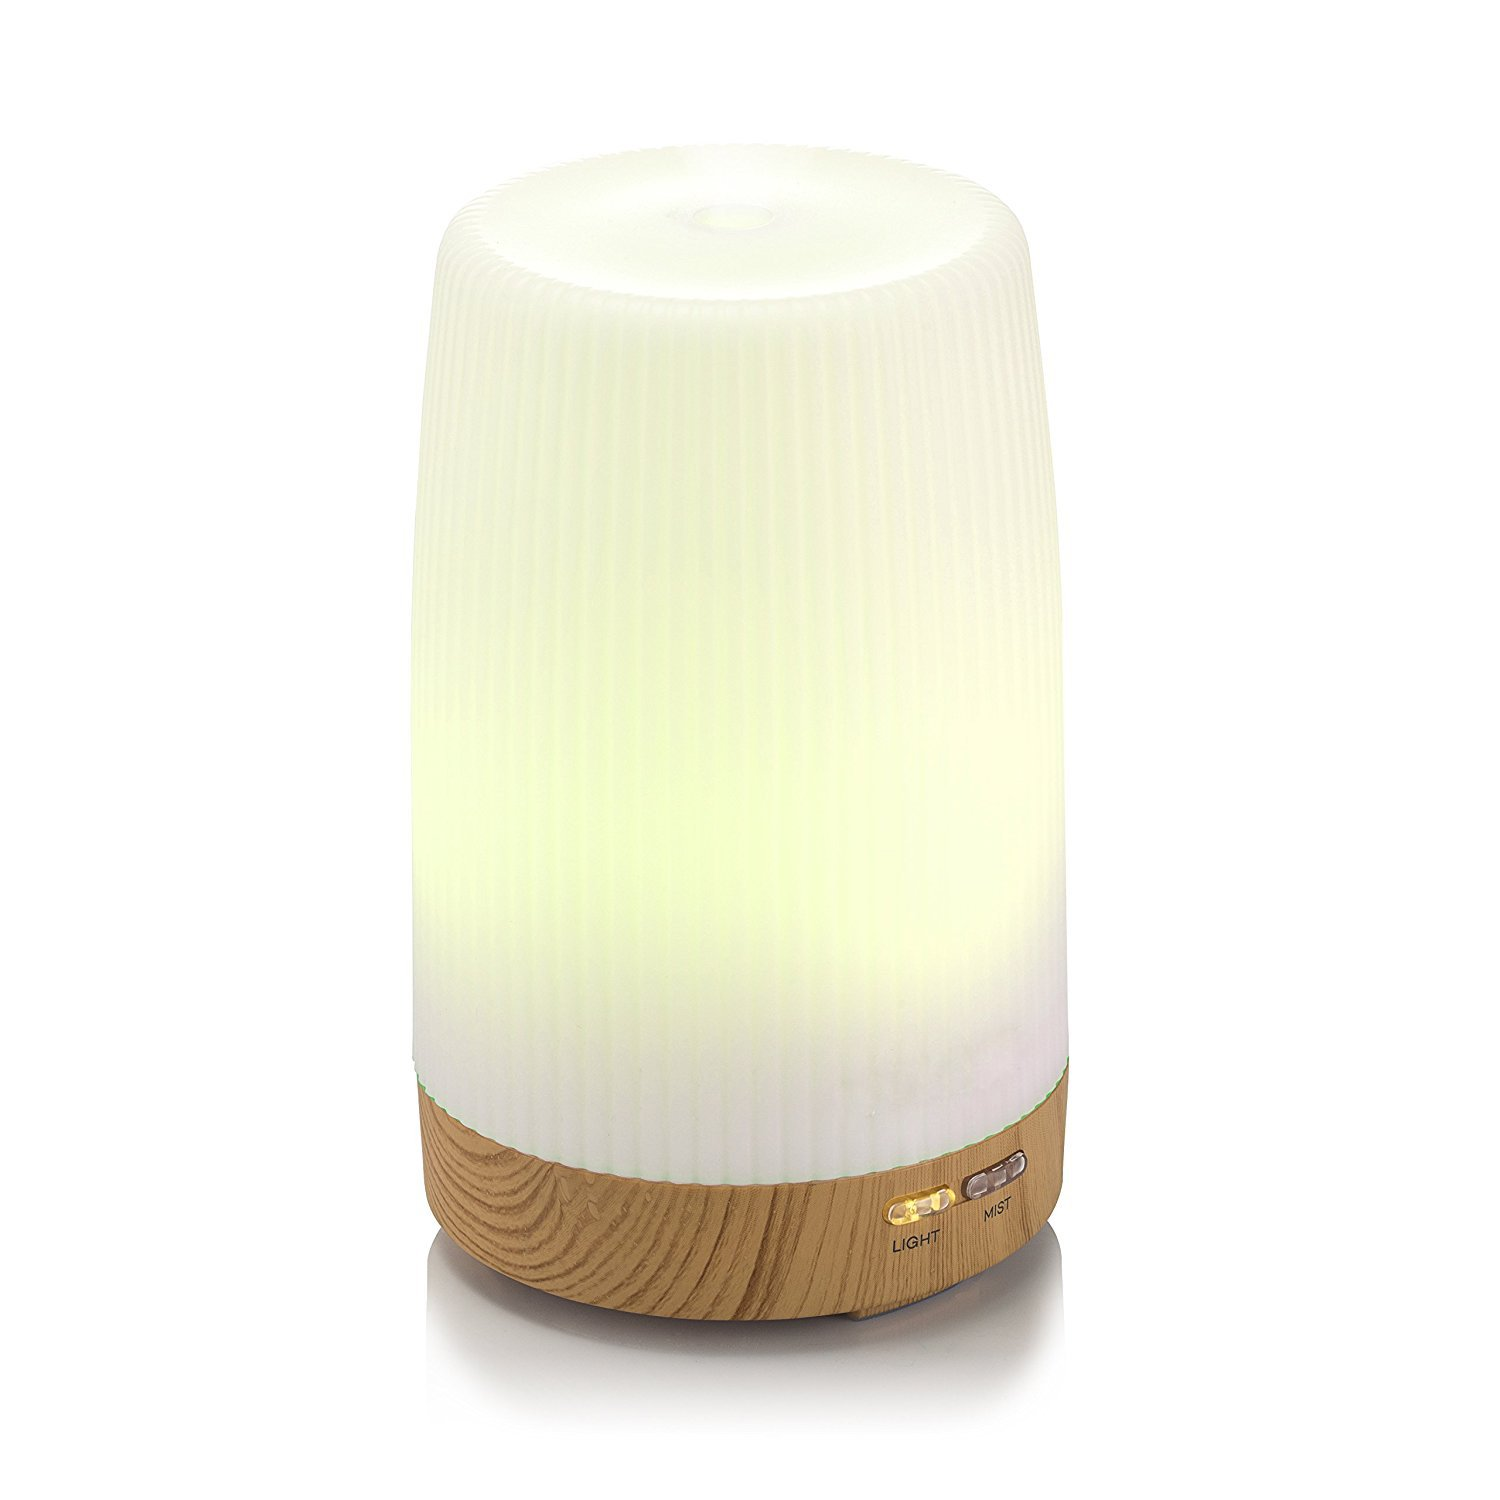 Qkfly Ultrasonic Essential Oil Diffuser with 7 Color Lamp 100ml Aroma Diffuser Auto Shutoff System for Office Bedroom Child's Room Spa Yoga